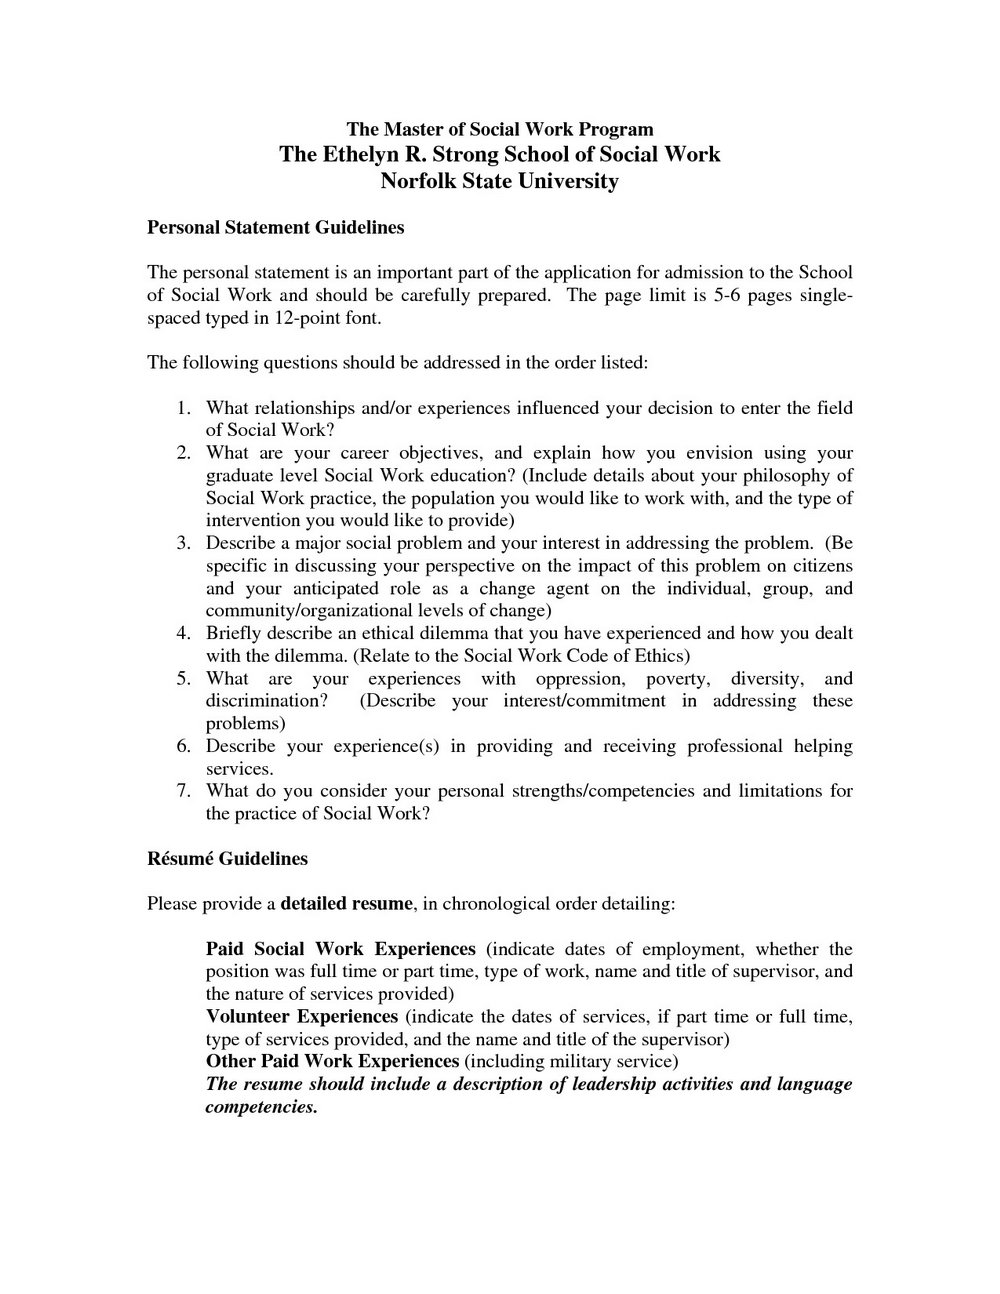 Southworth Exceptional Resume Paper